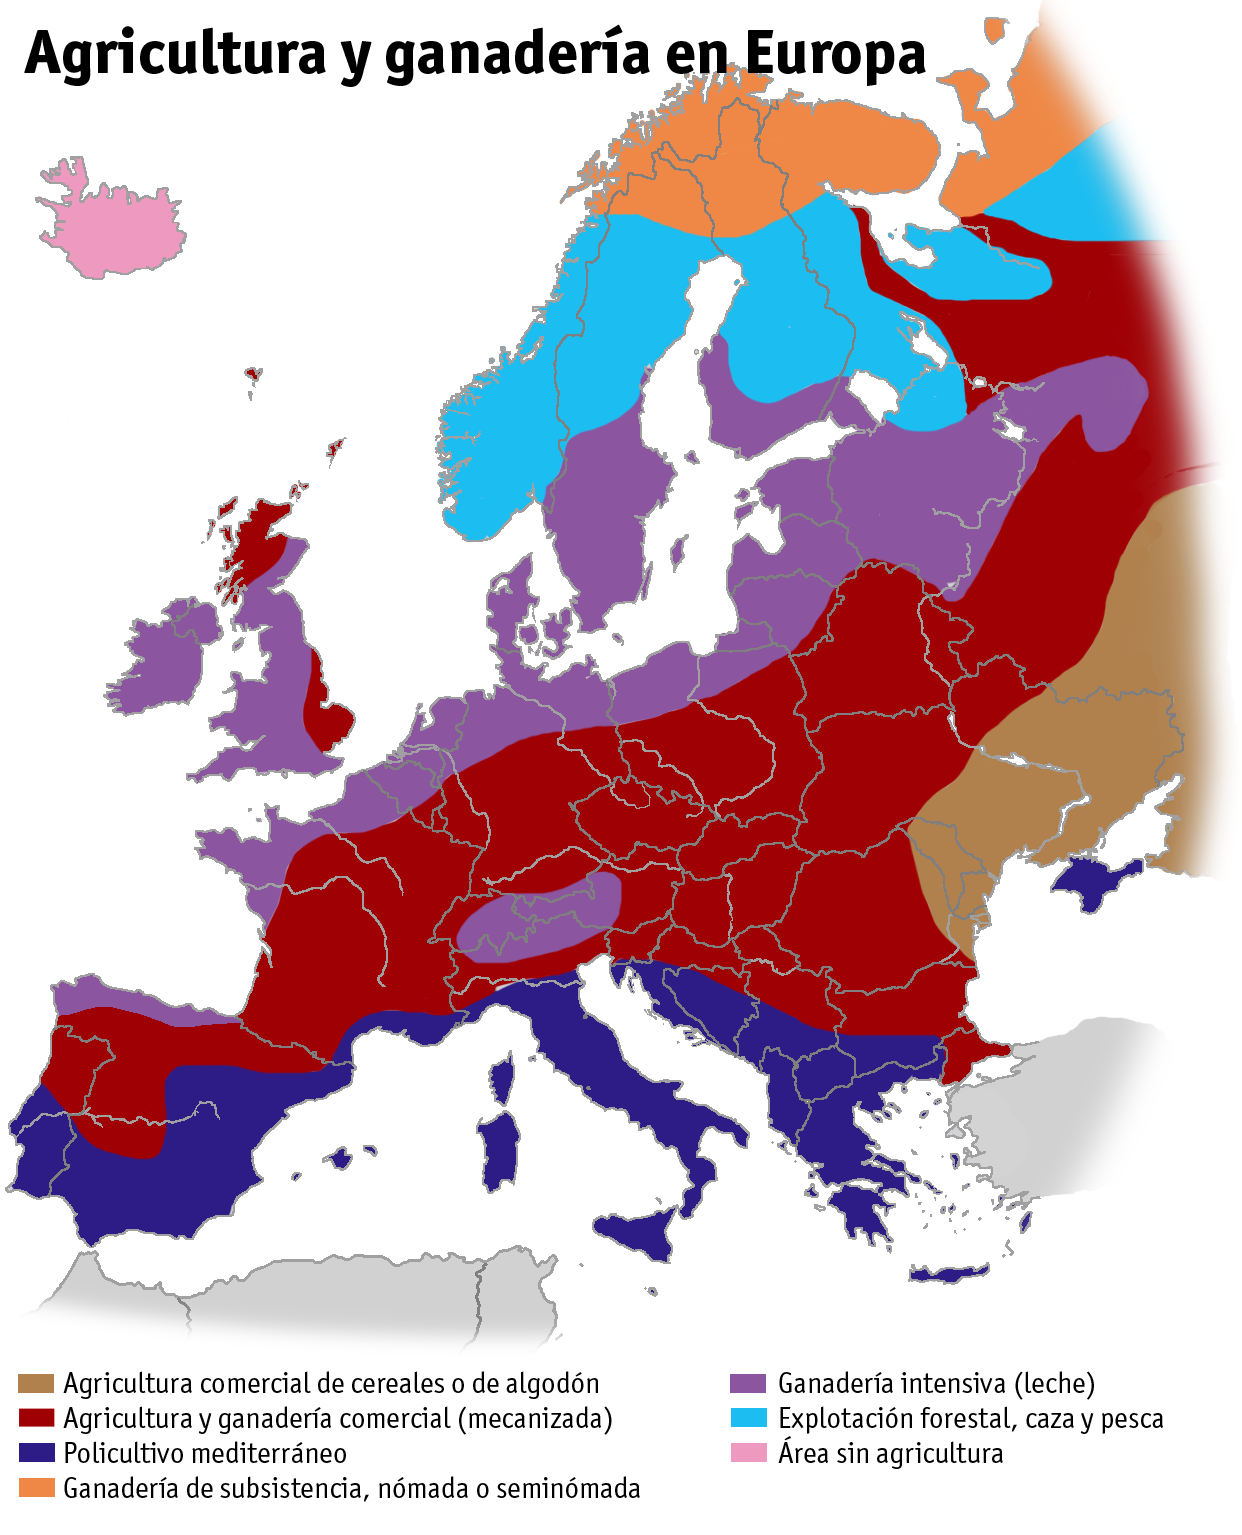 Atlas of Europe - Wikimedia Commons